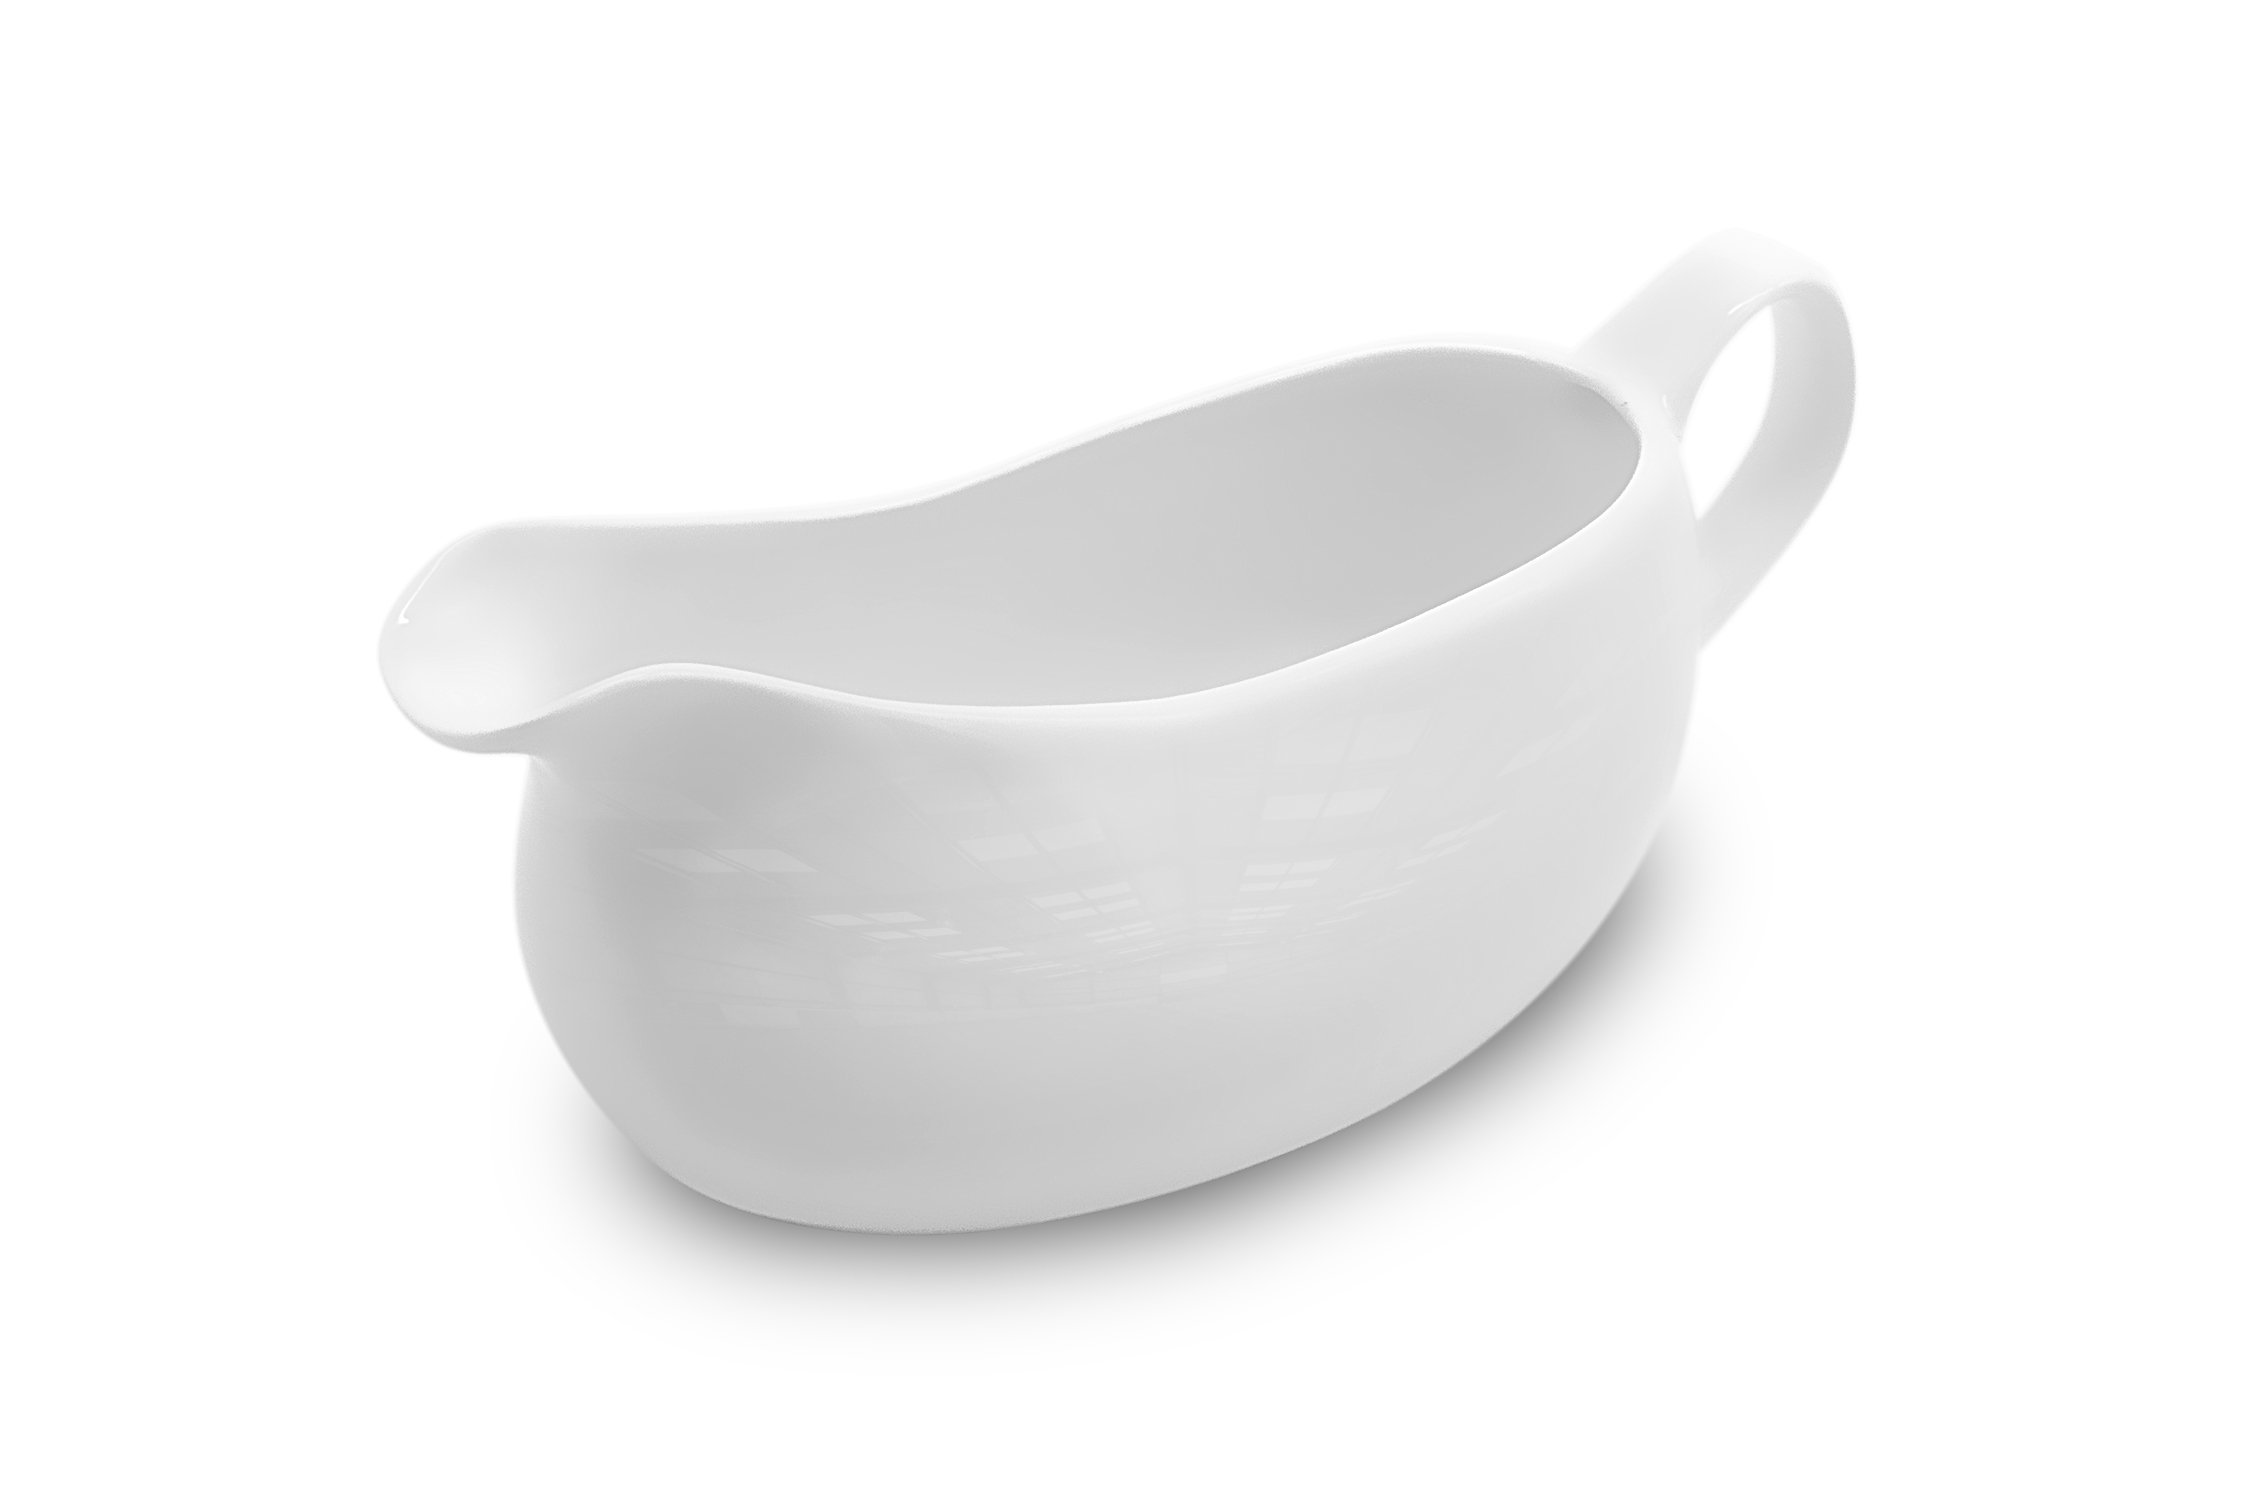 Nucookery Large 14 Oz Gravy Boat With Ergonomic Handle | White Fine Porcelain Saucier With Big Dripless Lip Spout | For Gravy, Warming Sauces, Salad Dressings, Milk, More | Microwave & Freezer Safe